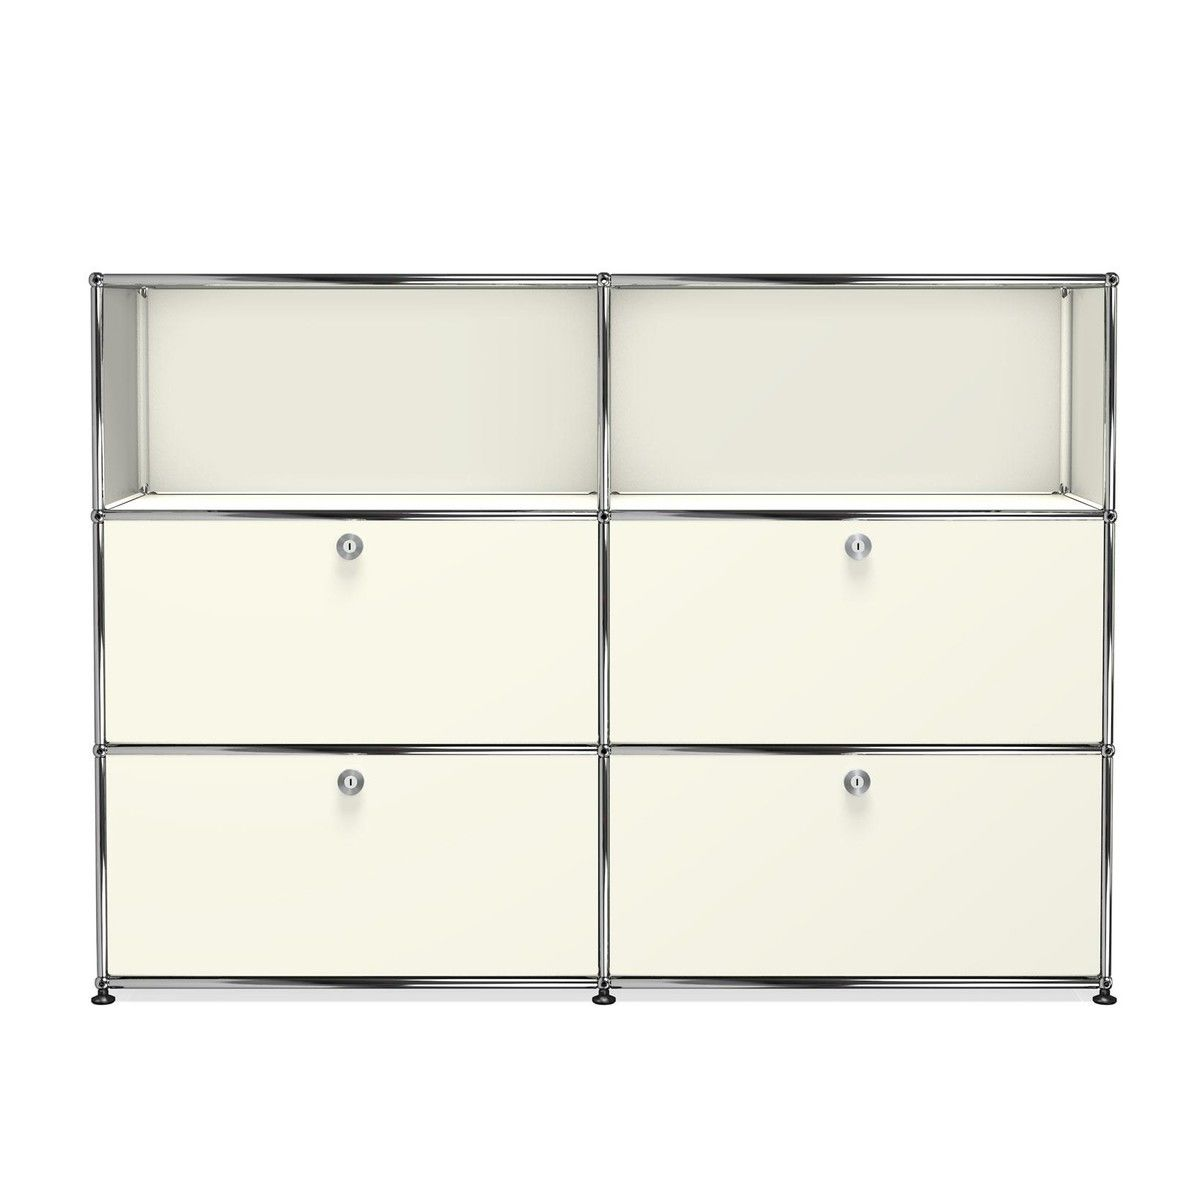 usm highboard mit 4 klappt ren usm haller. Black Bedroom Furniture Sets. Home Design Ideas